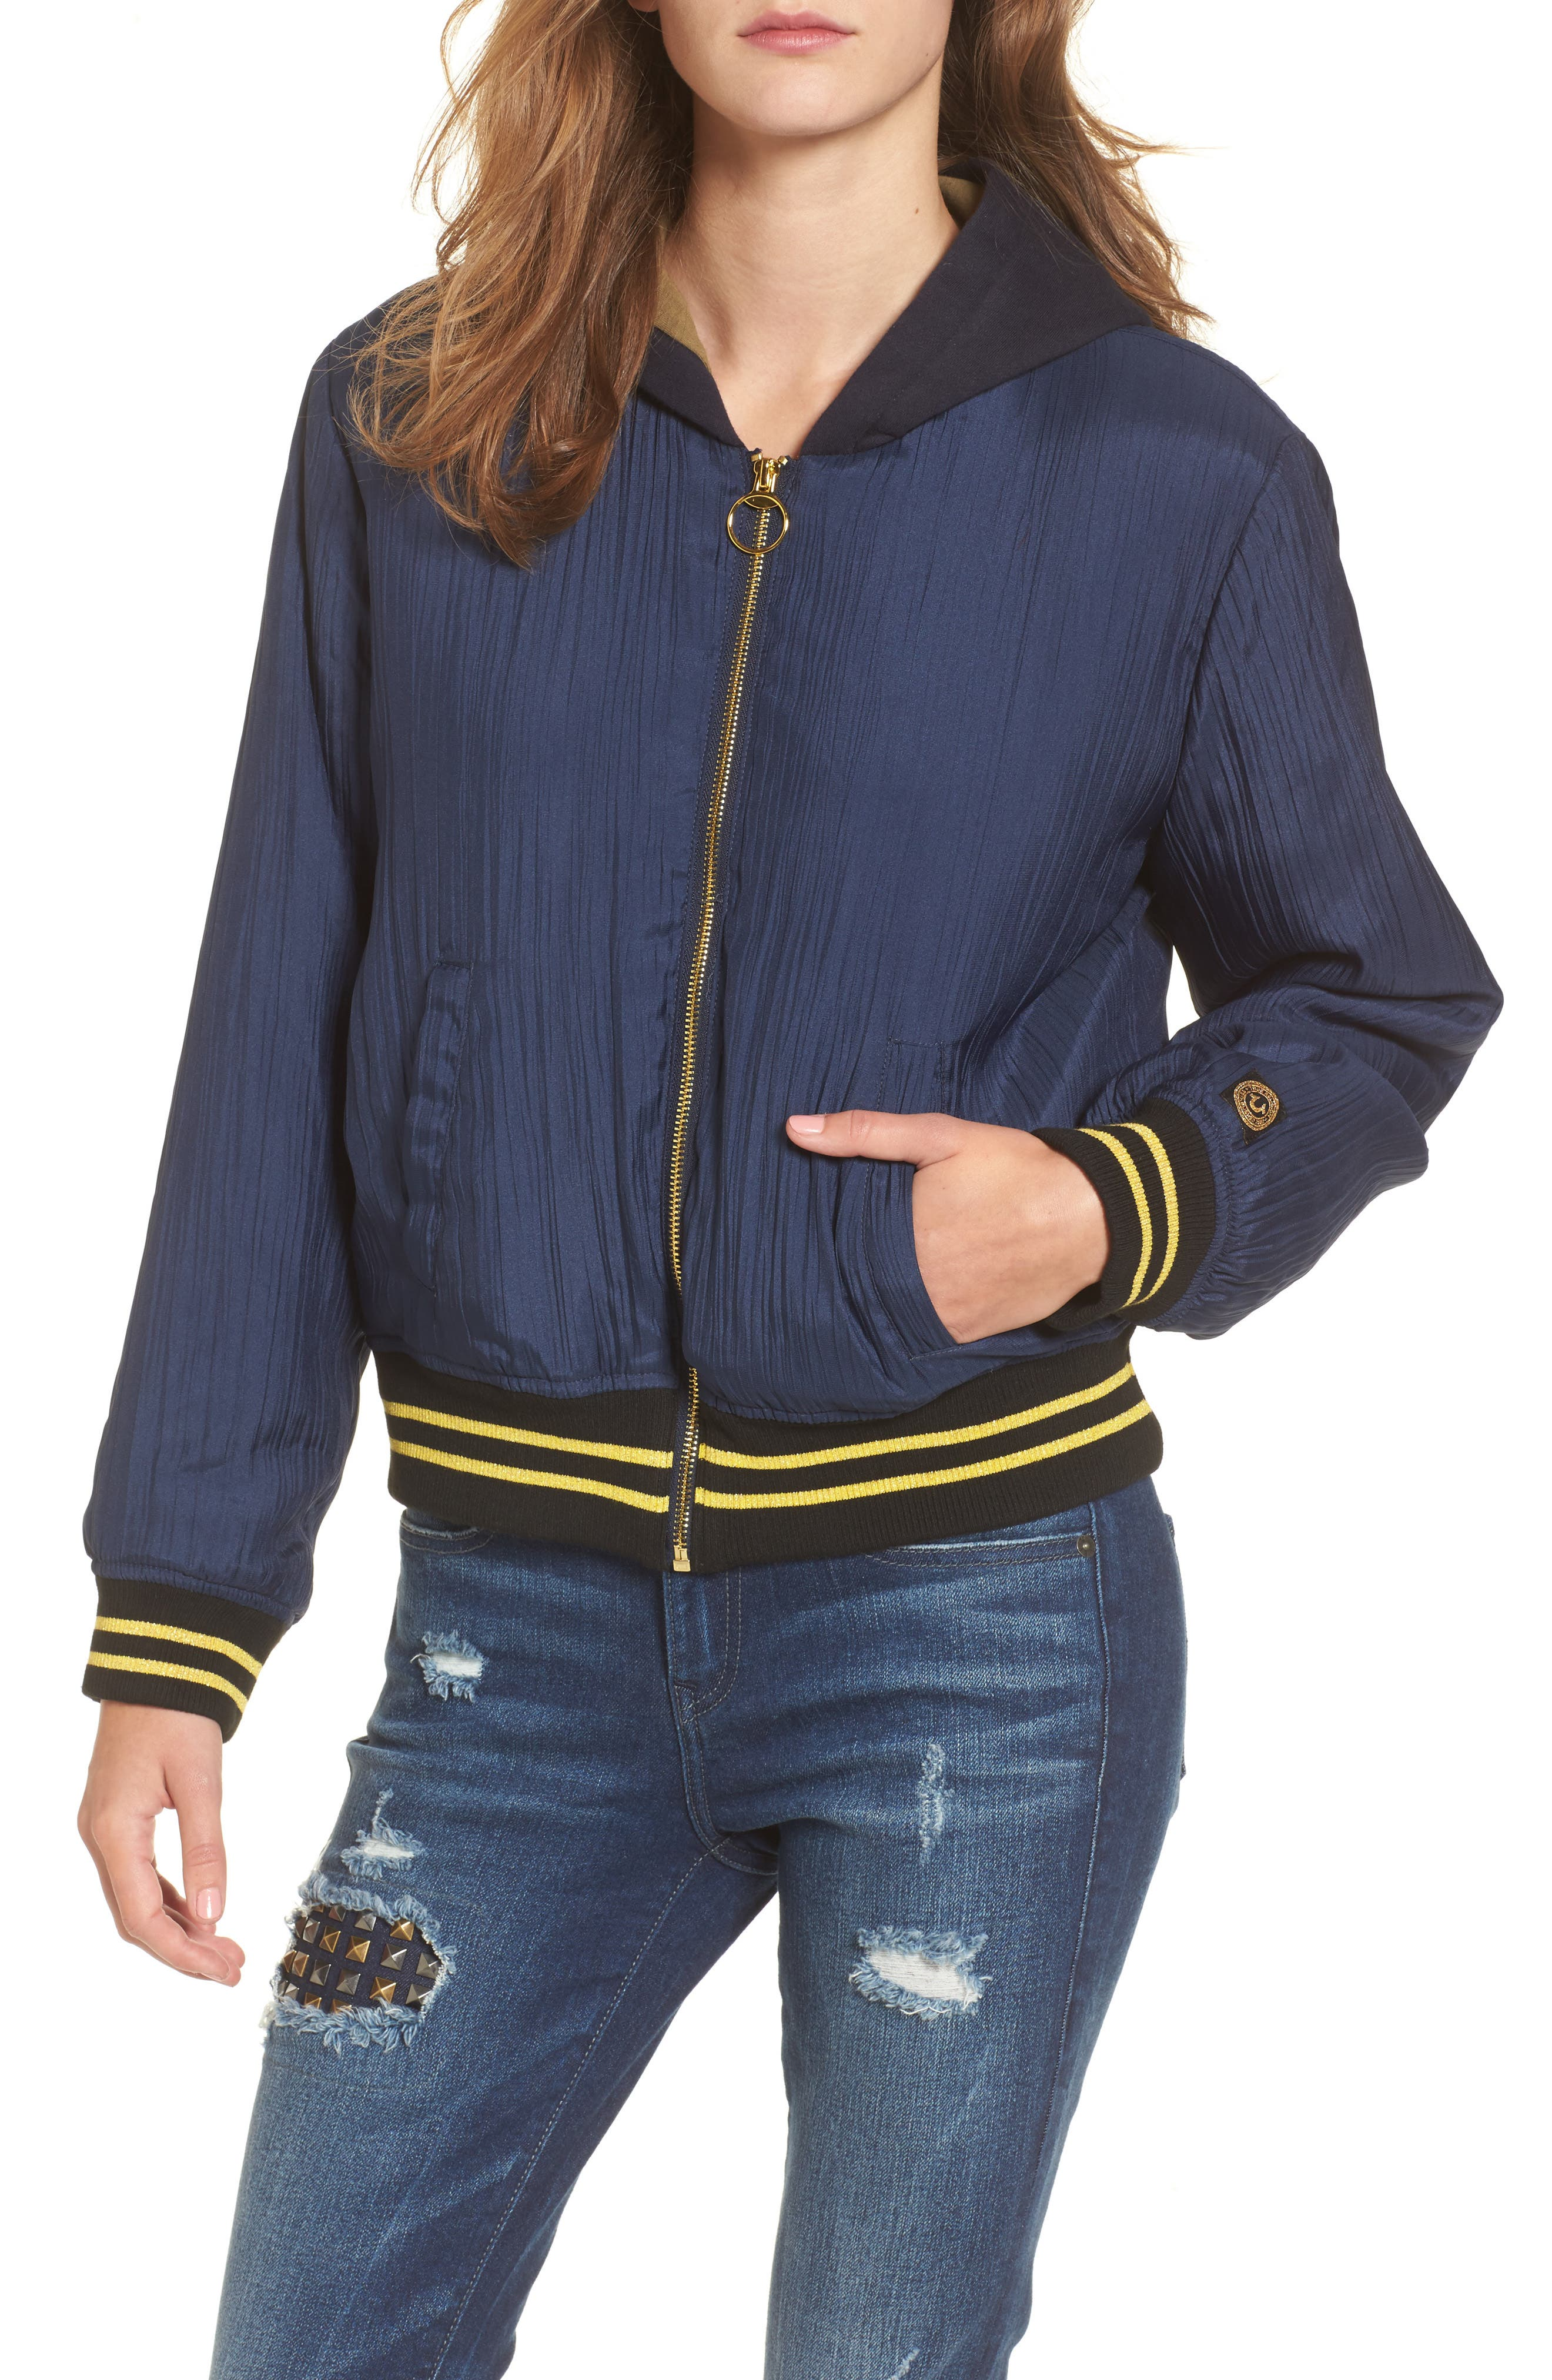 True Religion Brand Jeans Bomber Jacket